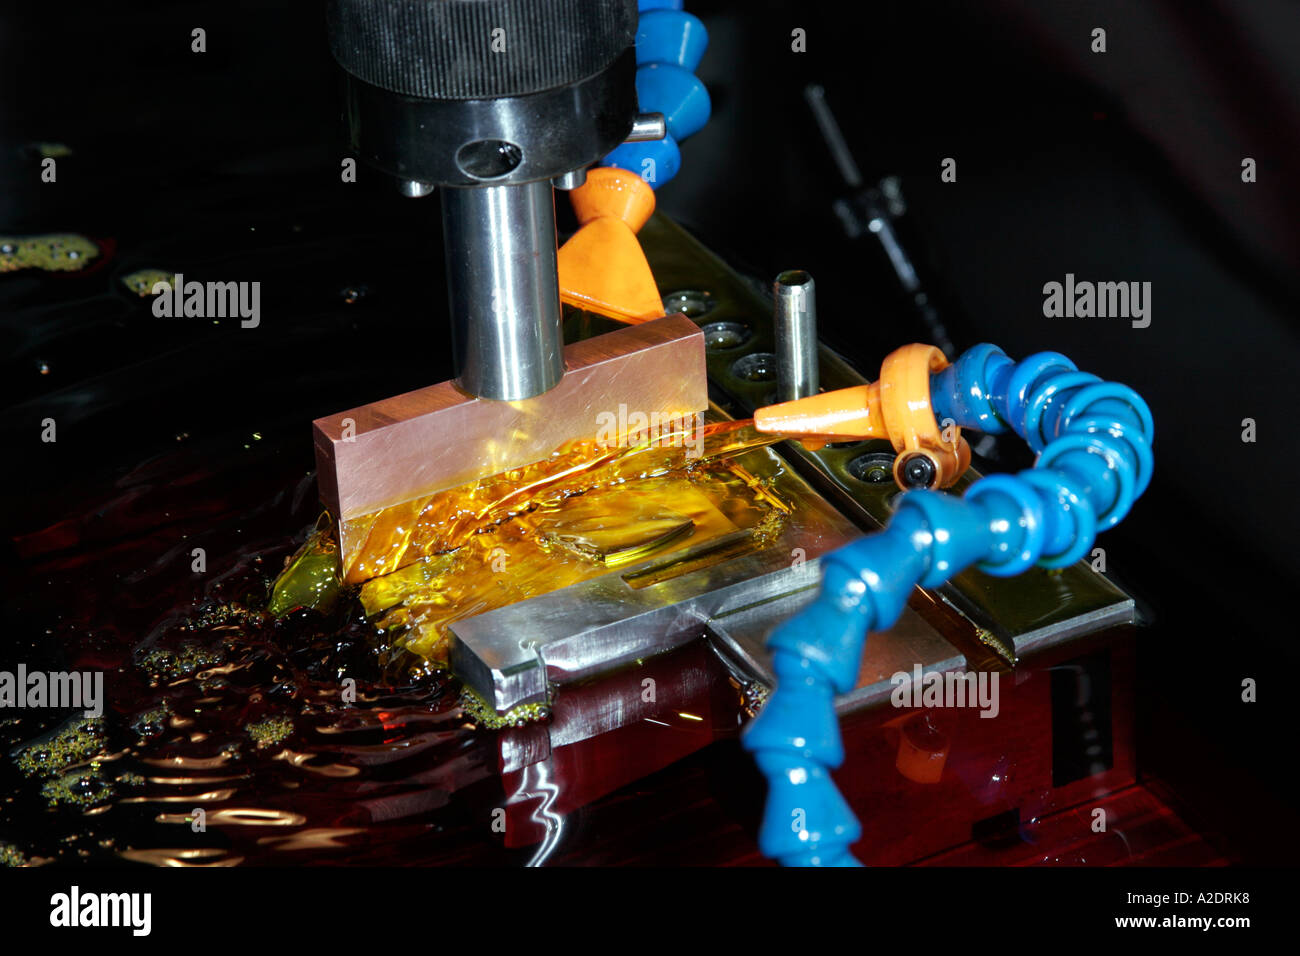 Electric discharge machine - Stock Image